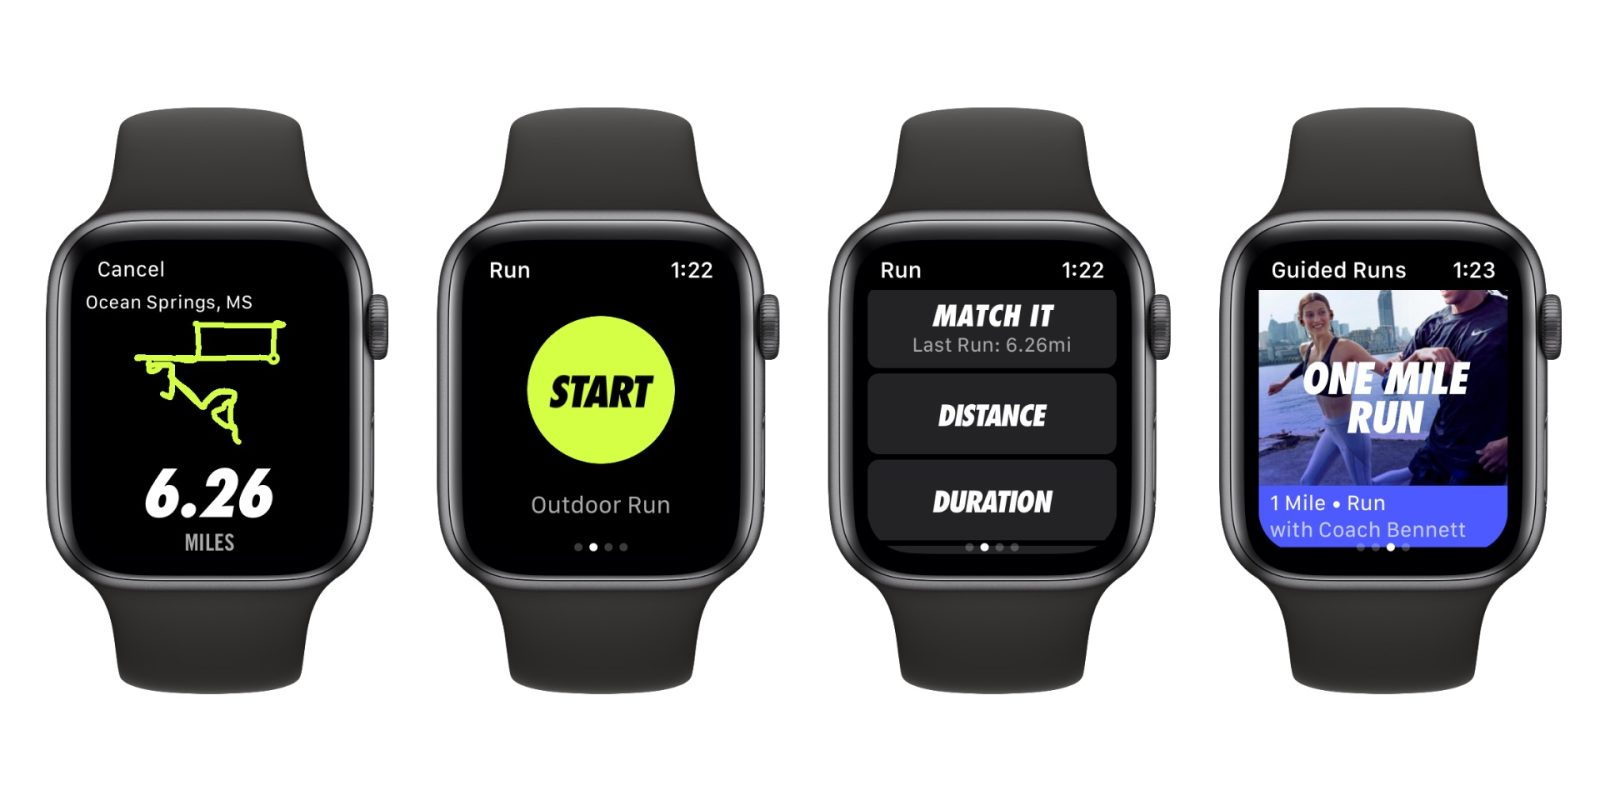 Nike+ Run Club now optimized for Apple Watch Series 4